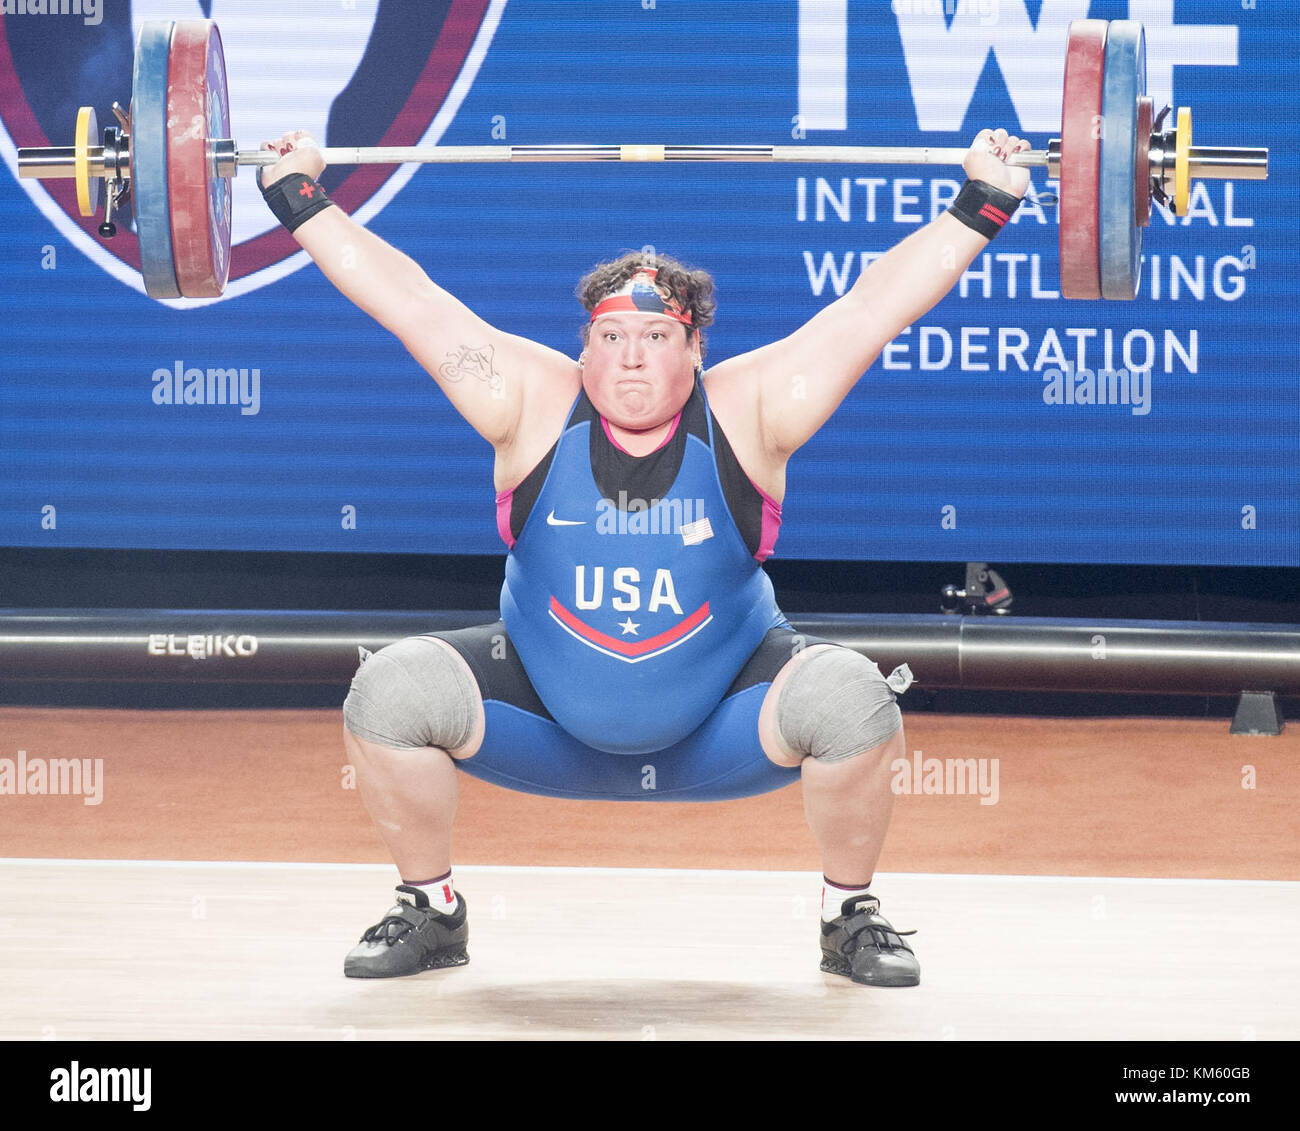 Anaheim, California, USA. 5th Dec, 2017. Sarah Robles, of the United States, competes in the Snatch Lift. Sarah - Stock Image